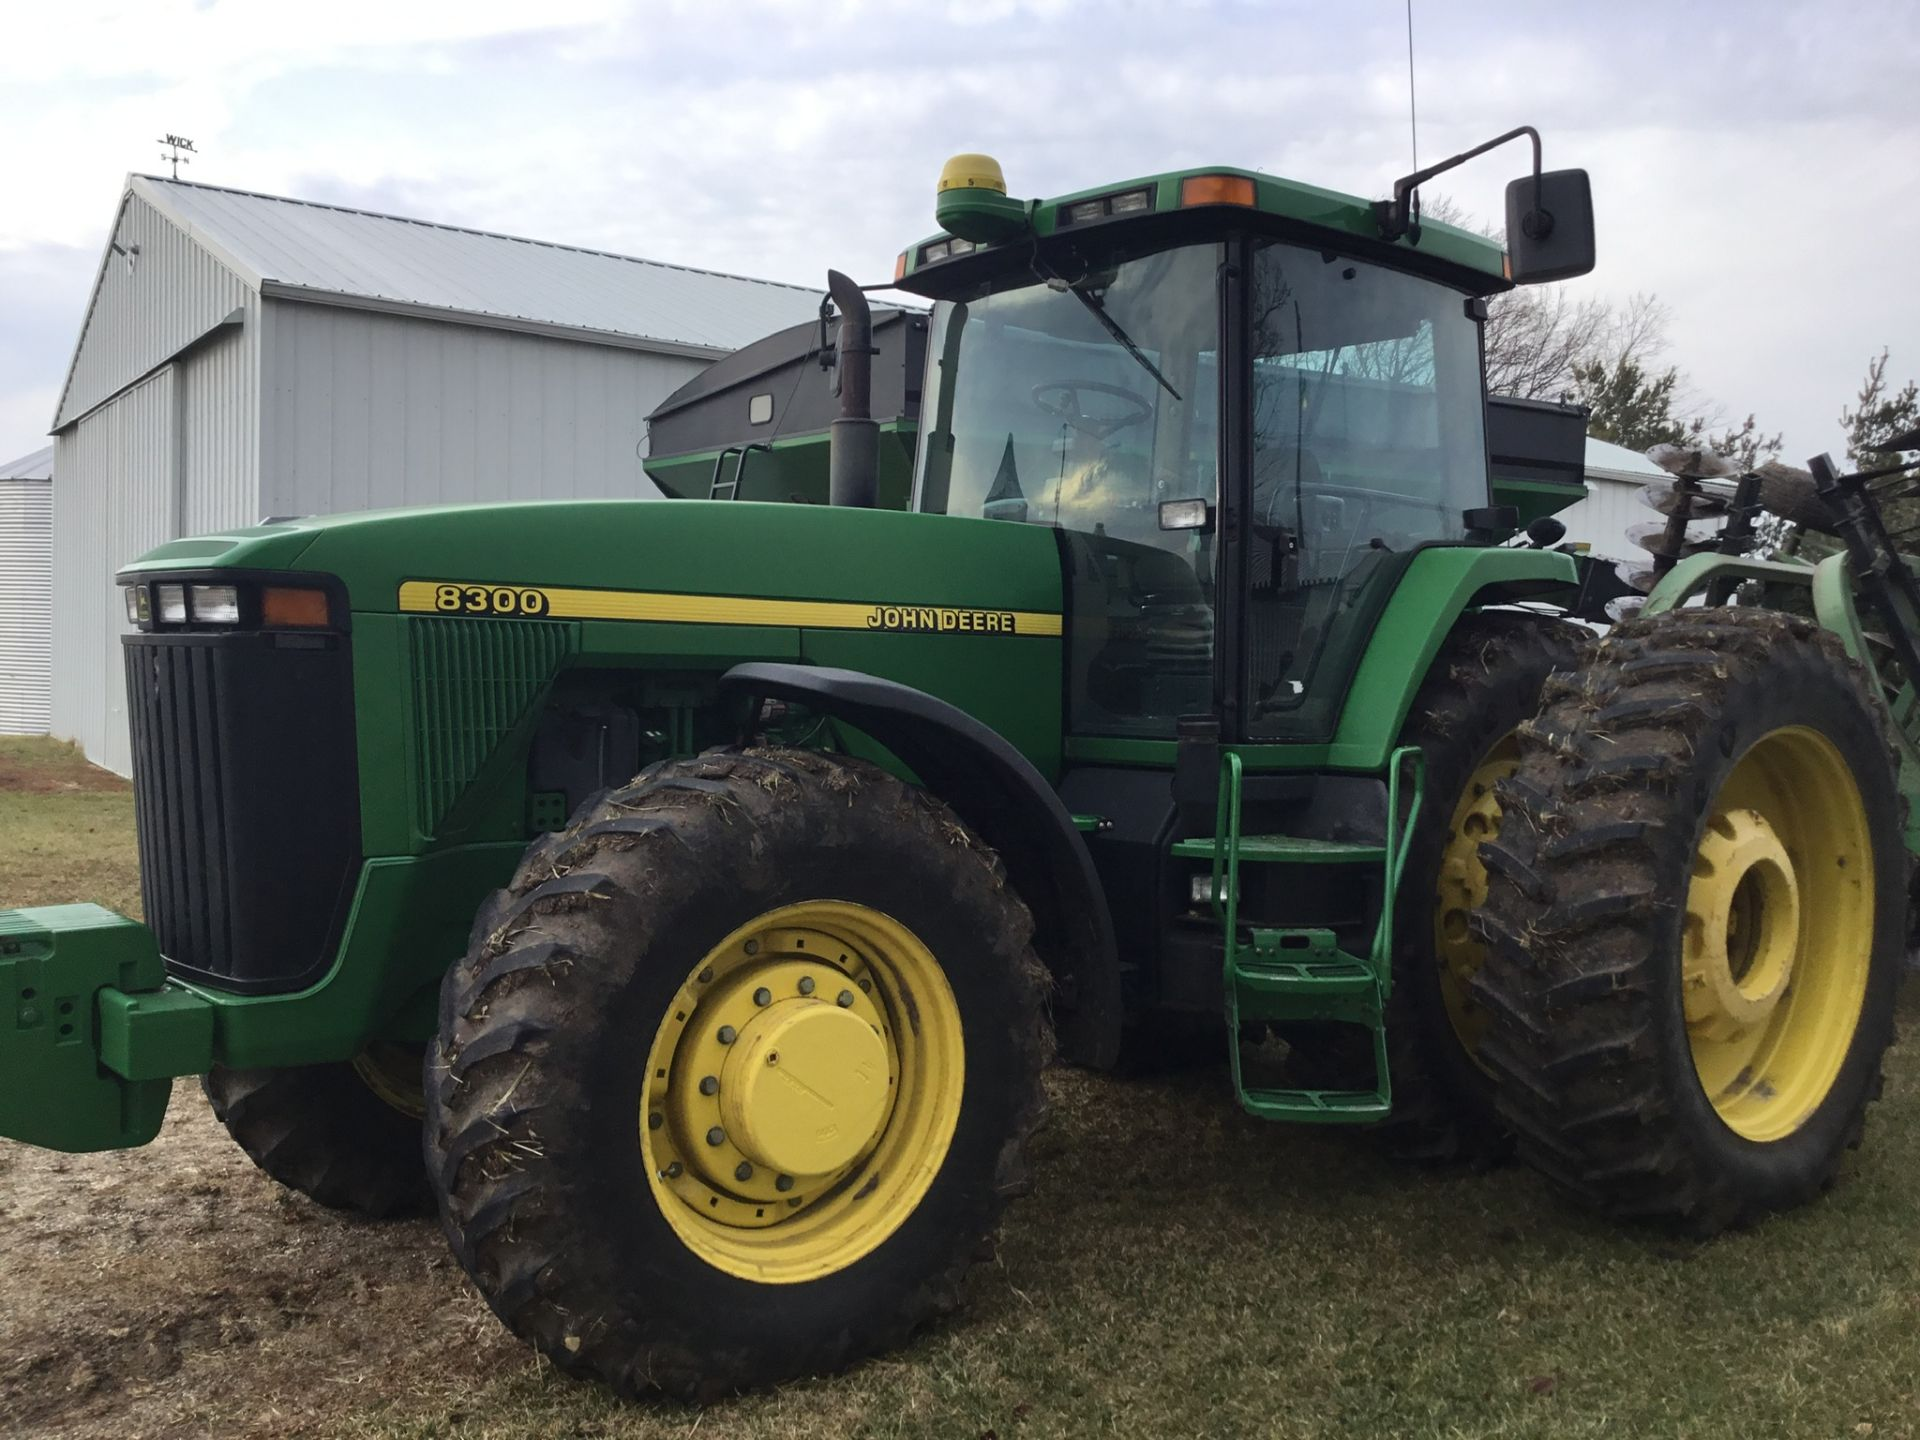 1997 John Deere 8300 MFWD, Power Shift, 3 Hydraulic Remotes, 3 Pt., Quick Hitch, PTO, Green Star - Image 2 of 25